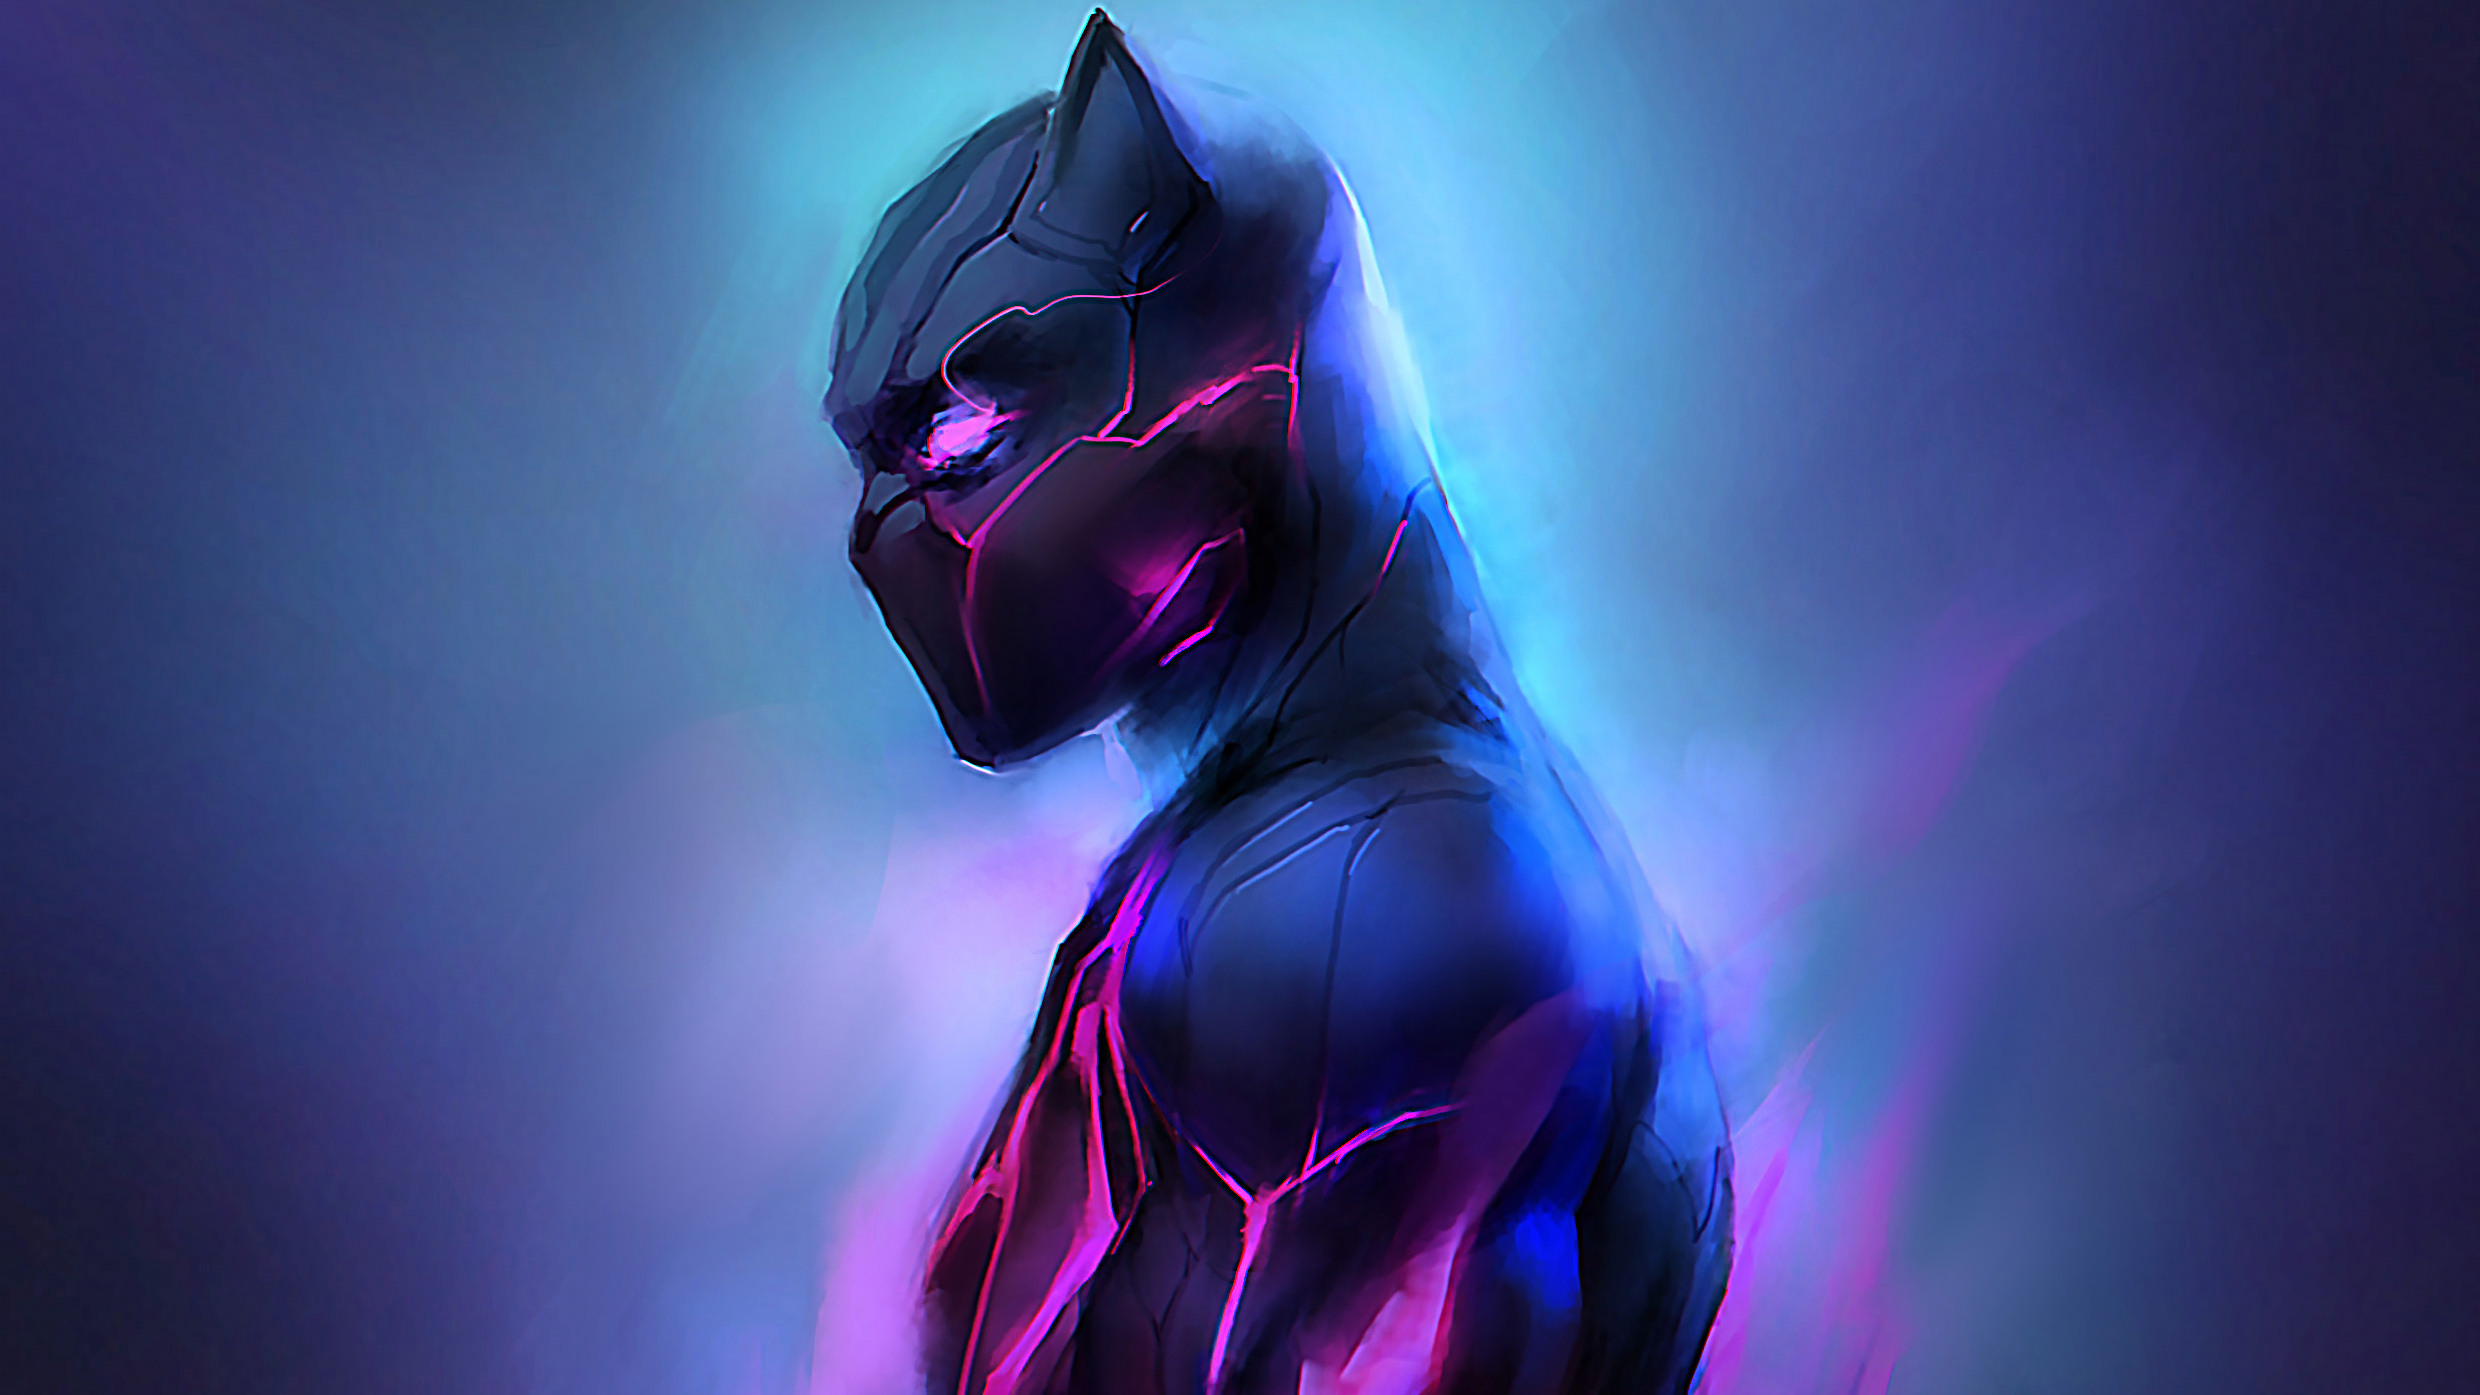 Black Panther Hd Wallpaper Background Image 2480x1395